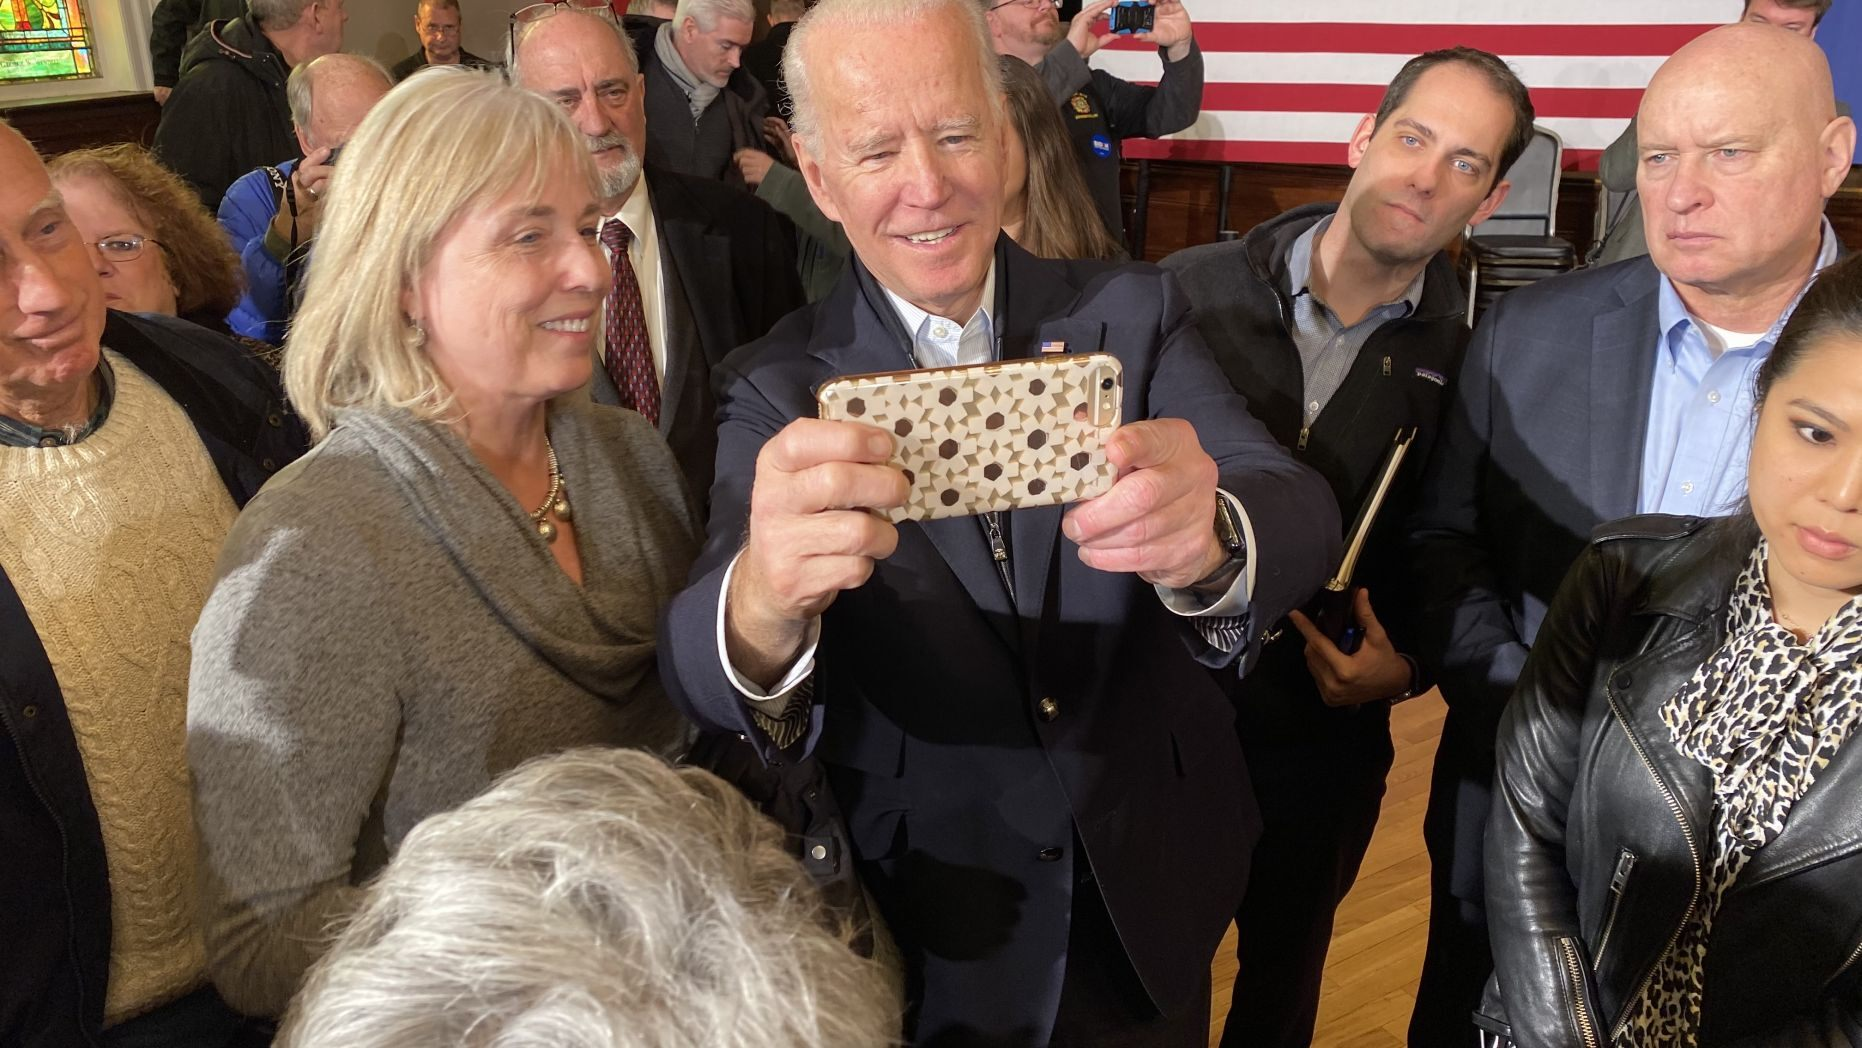 Former Vice President Joe Biden takes selfies with supporters during a campaign event in Somersworth, N.H. on Feb. 5, 2020